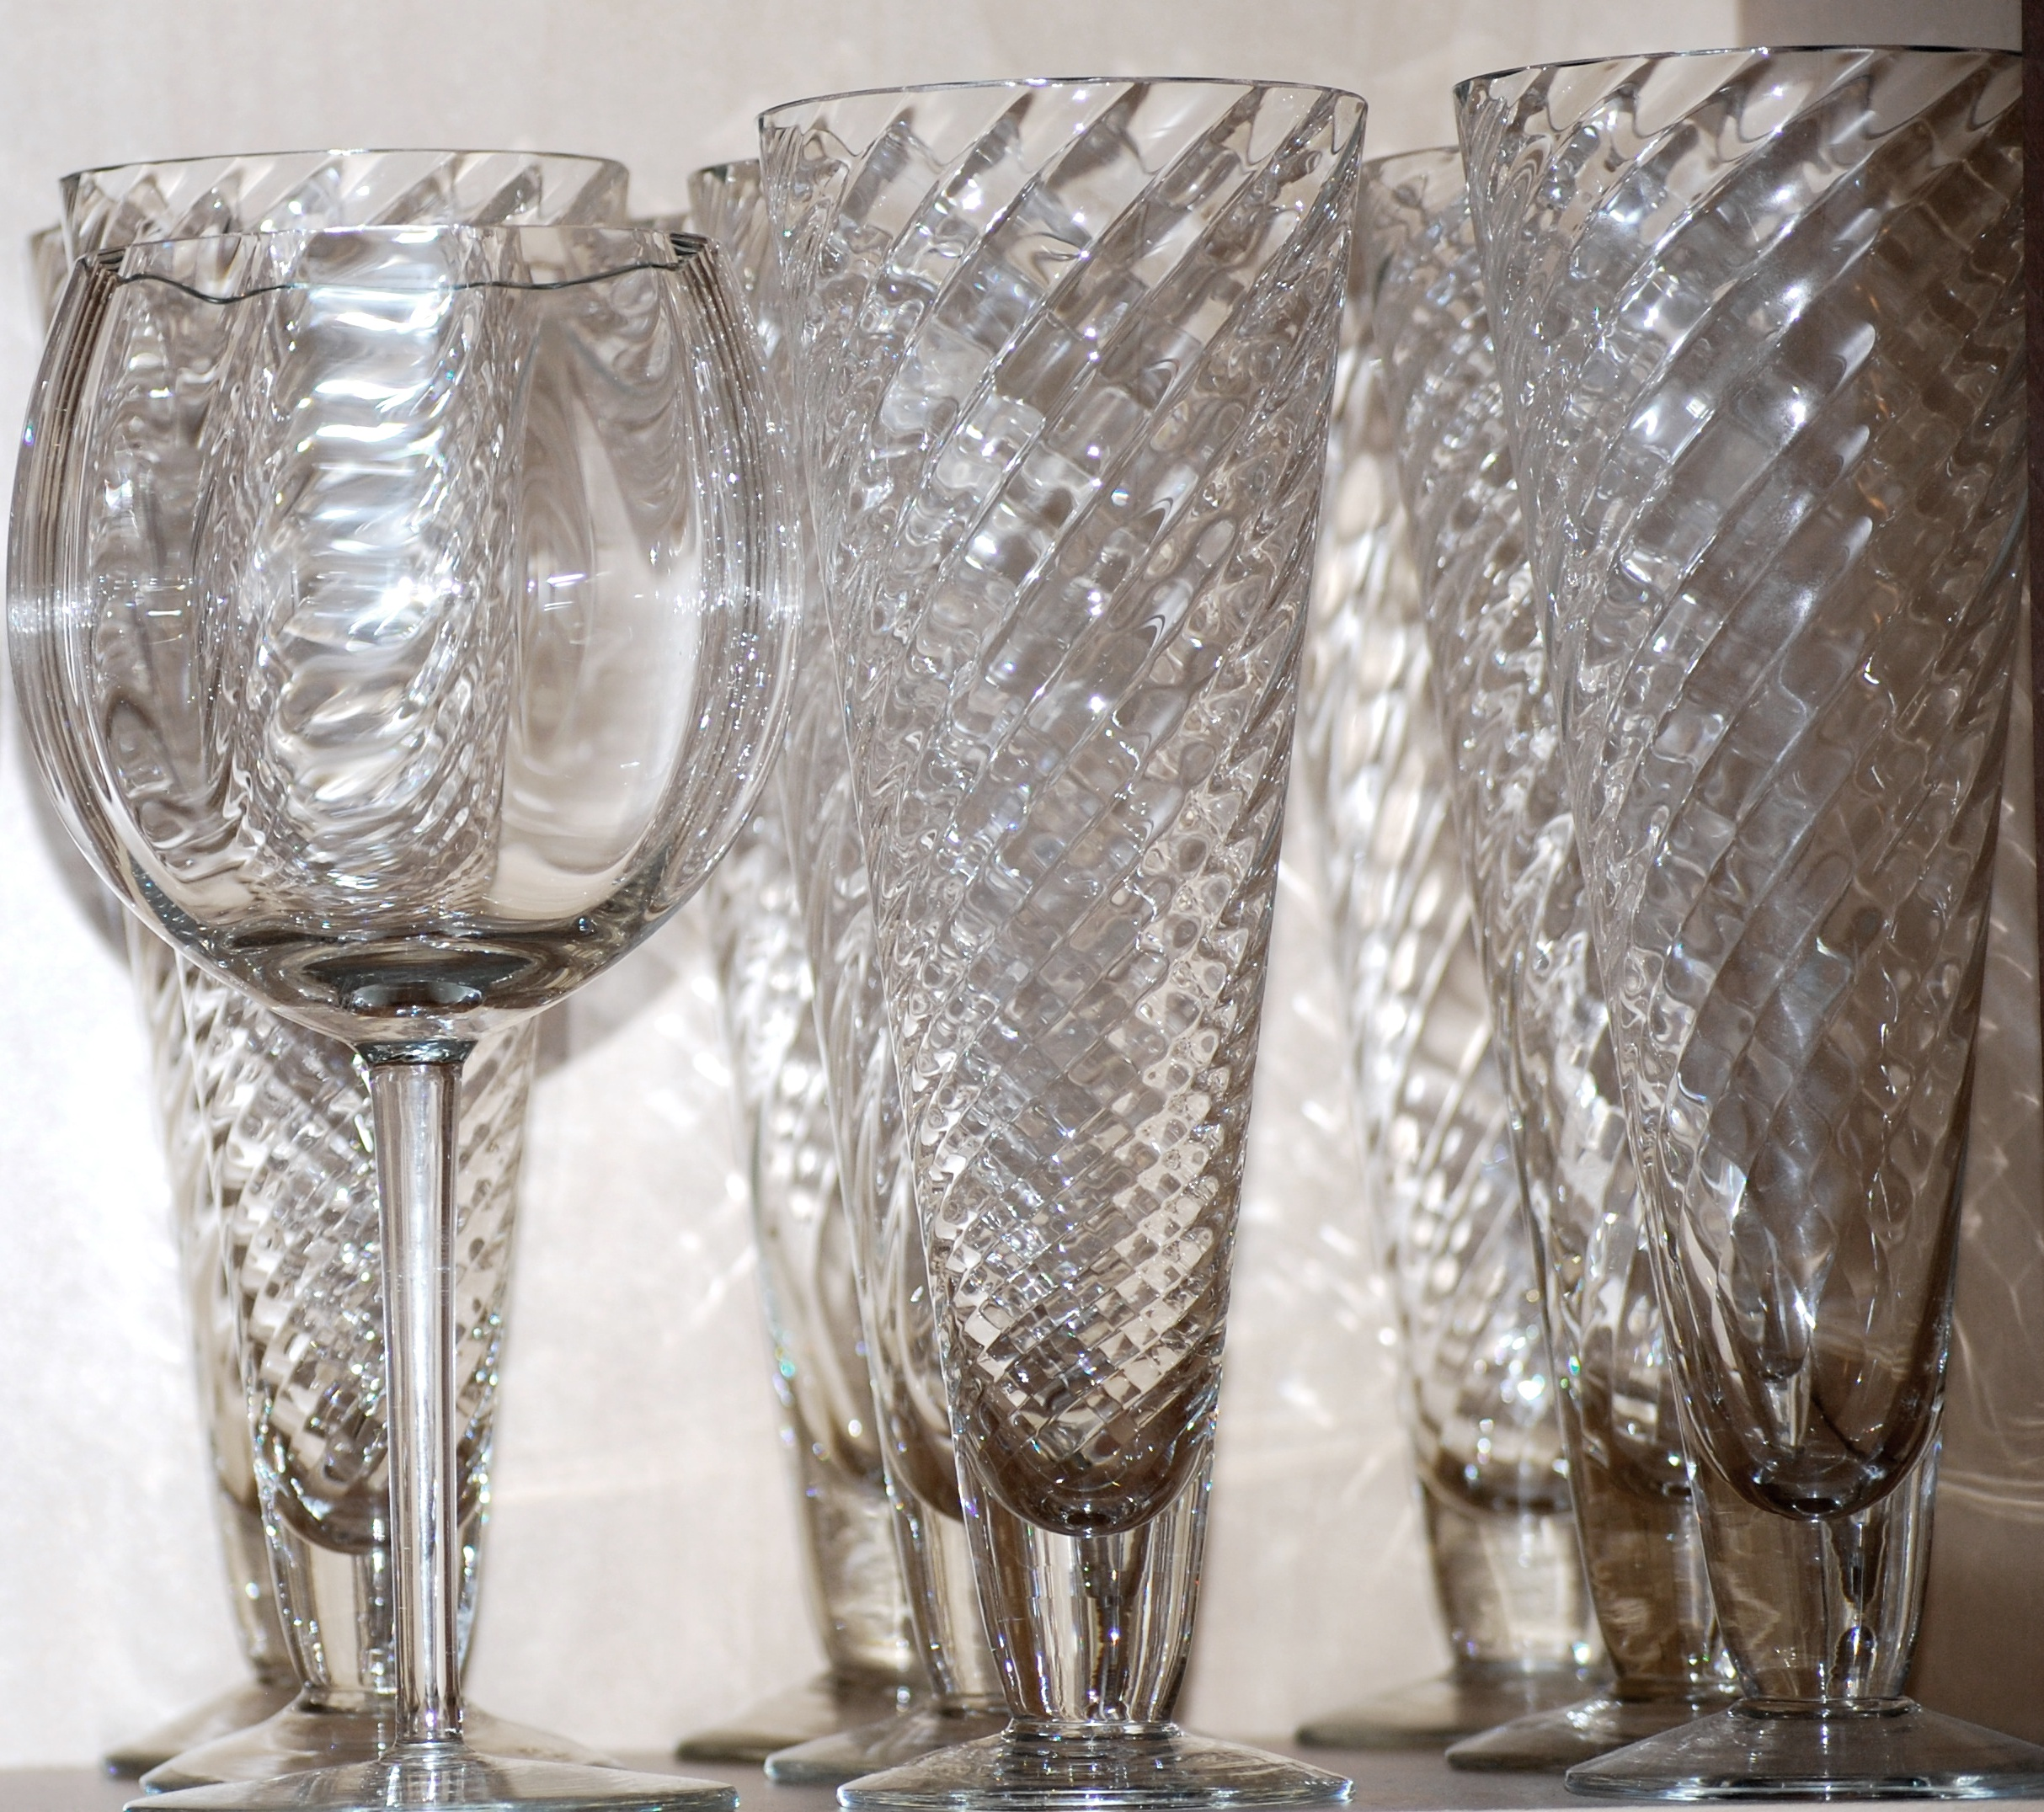 Bar, beverage, drinks, Glass and stemware, party, entertain